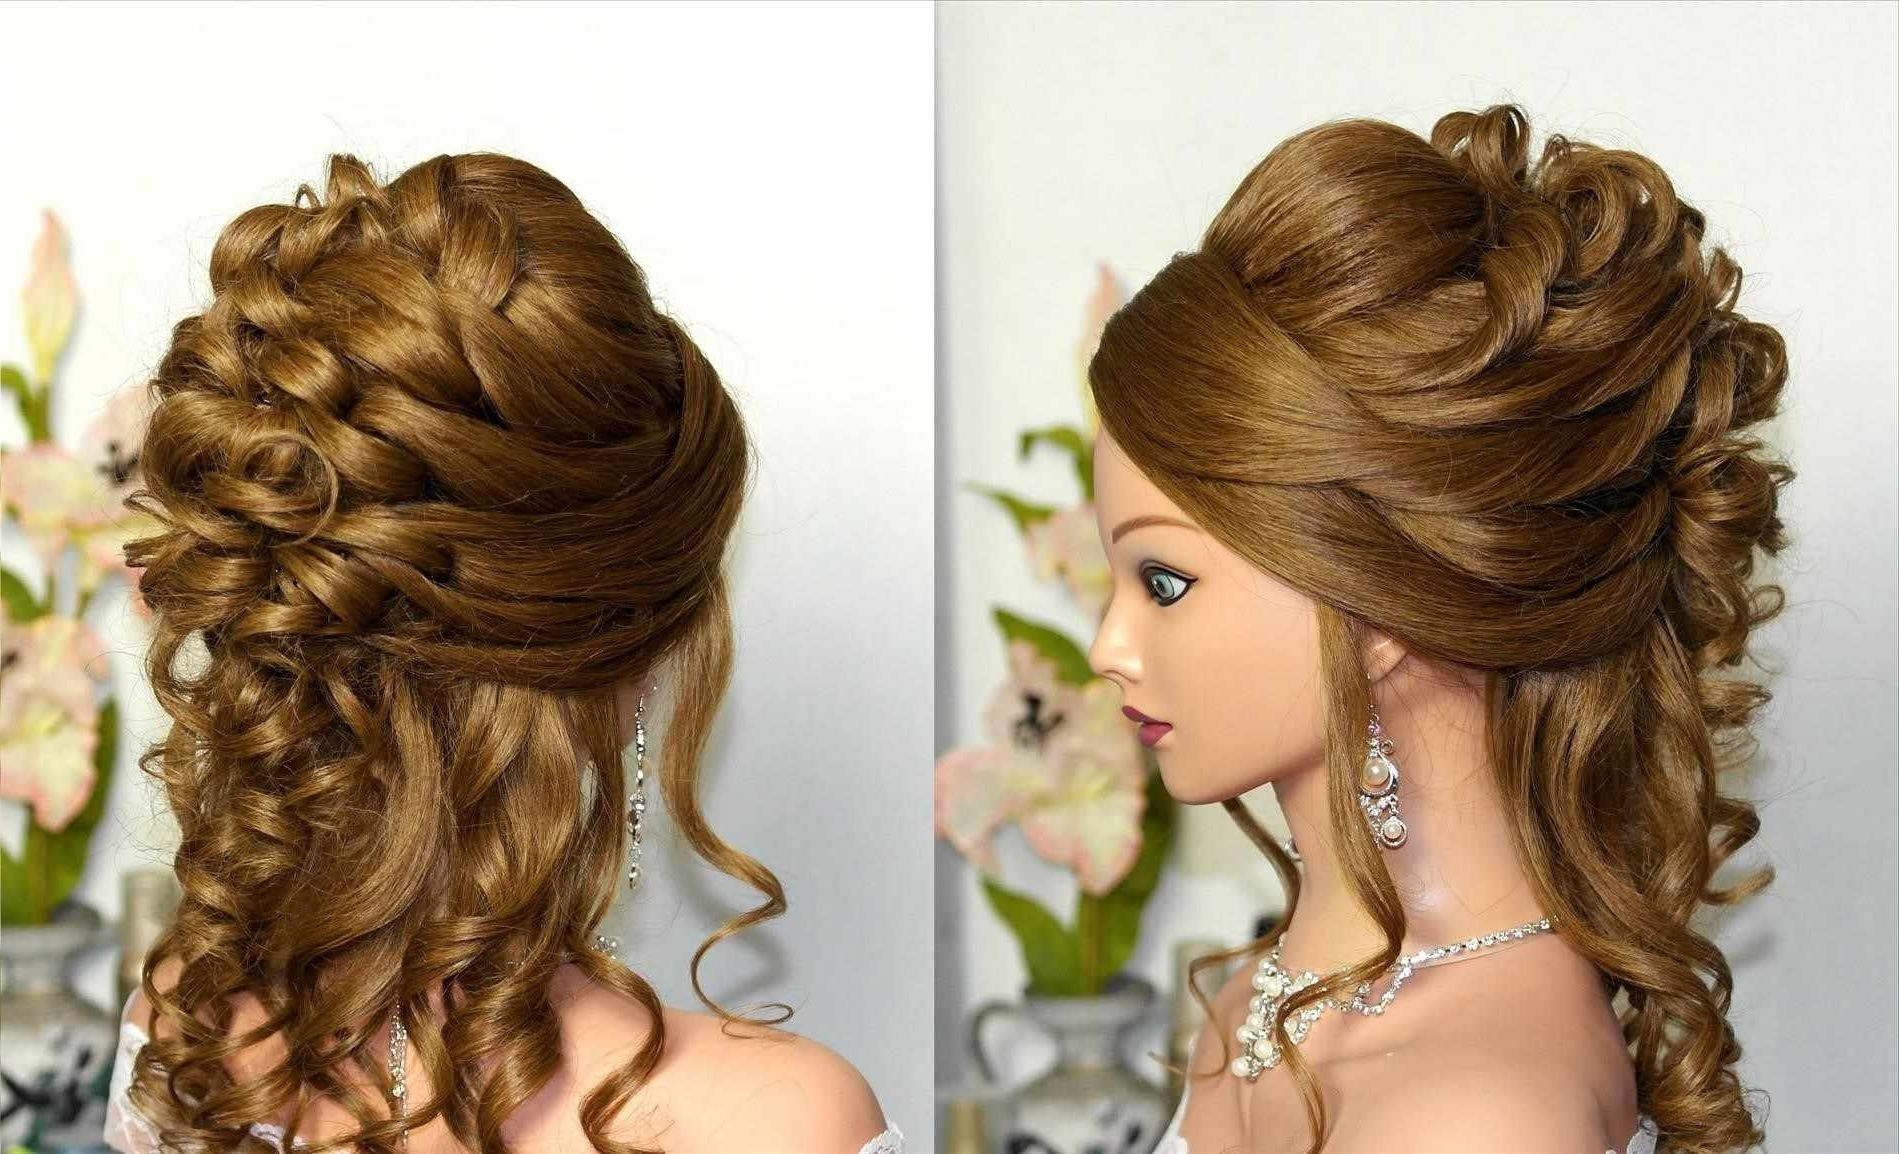 Easy Updo Hairstyles For Medium Hair Hairstyle Fodo Women Impressive Inside Easy Braided Updo Hairstyles For Long Hair (View 10 of 15)